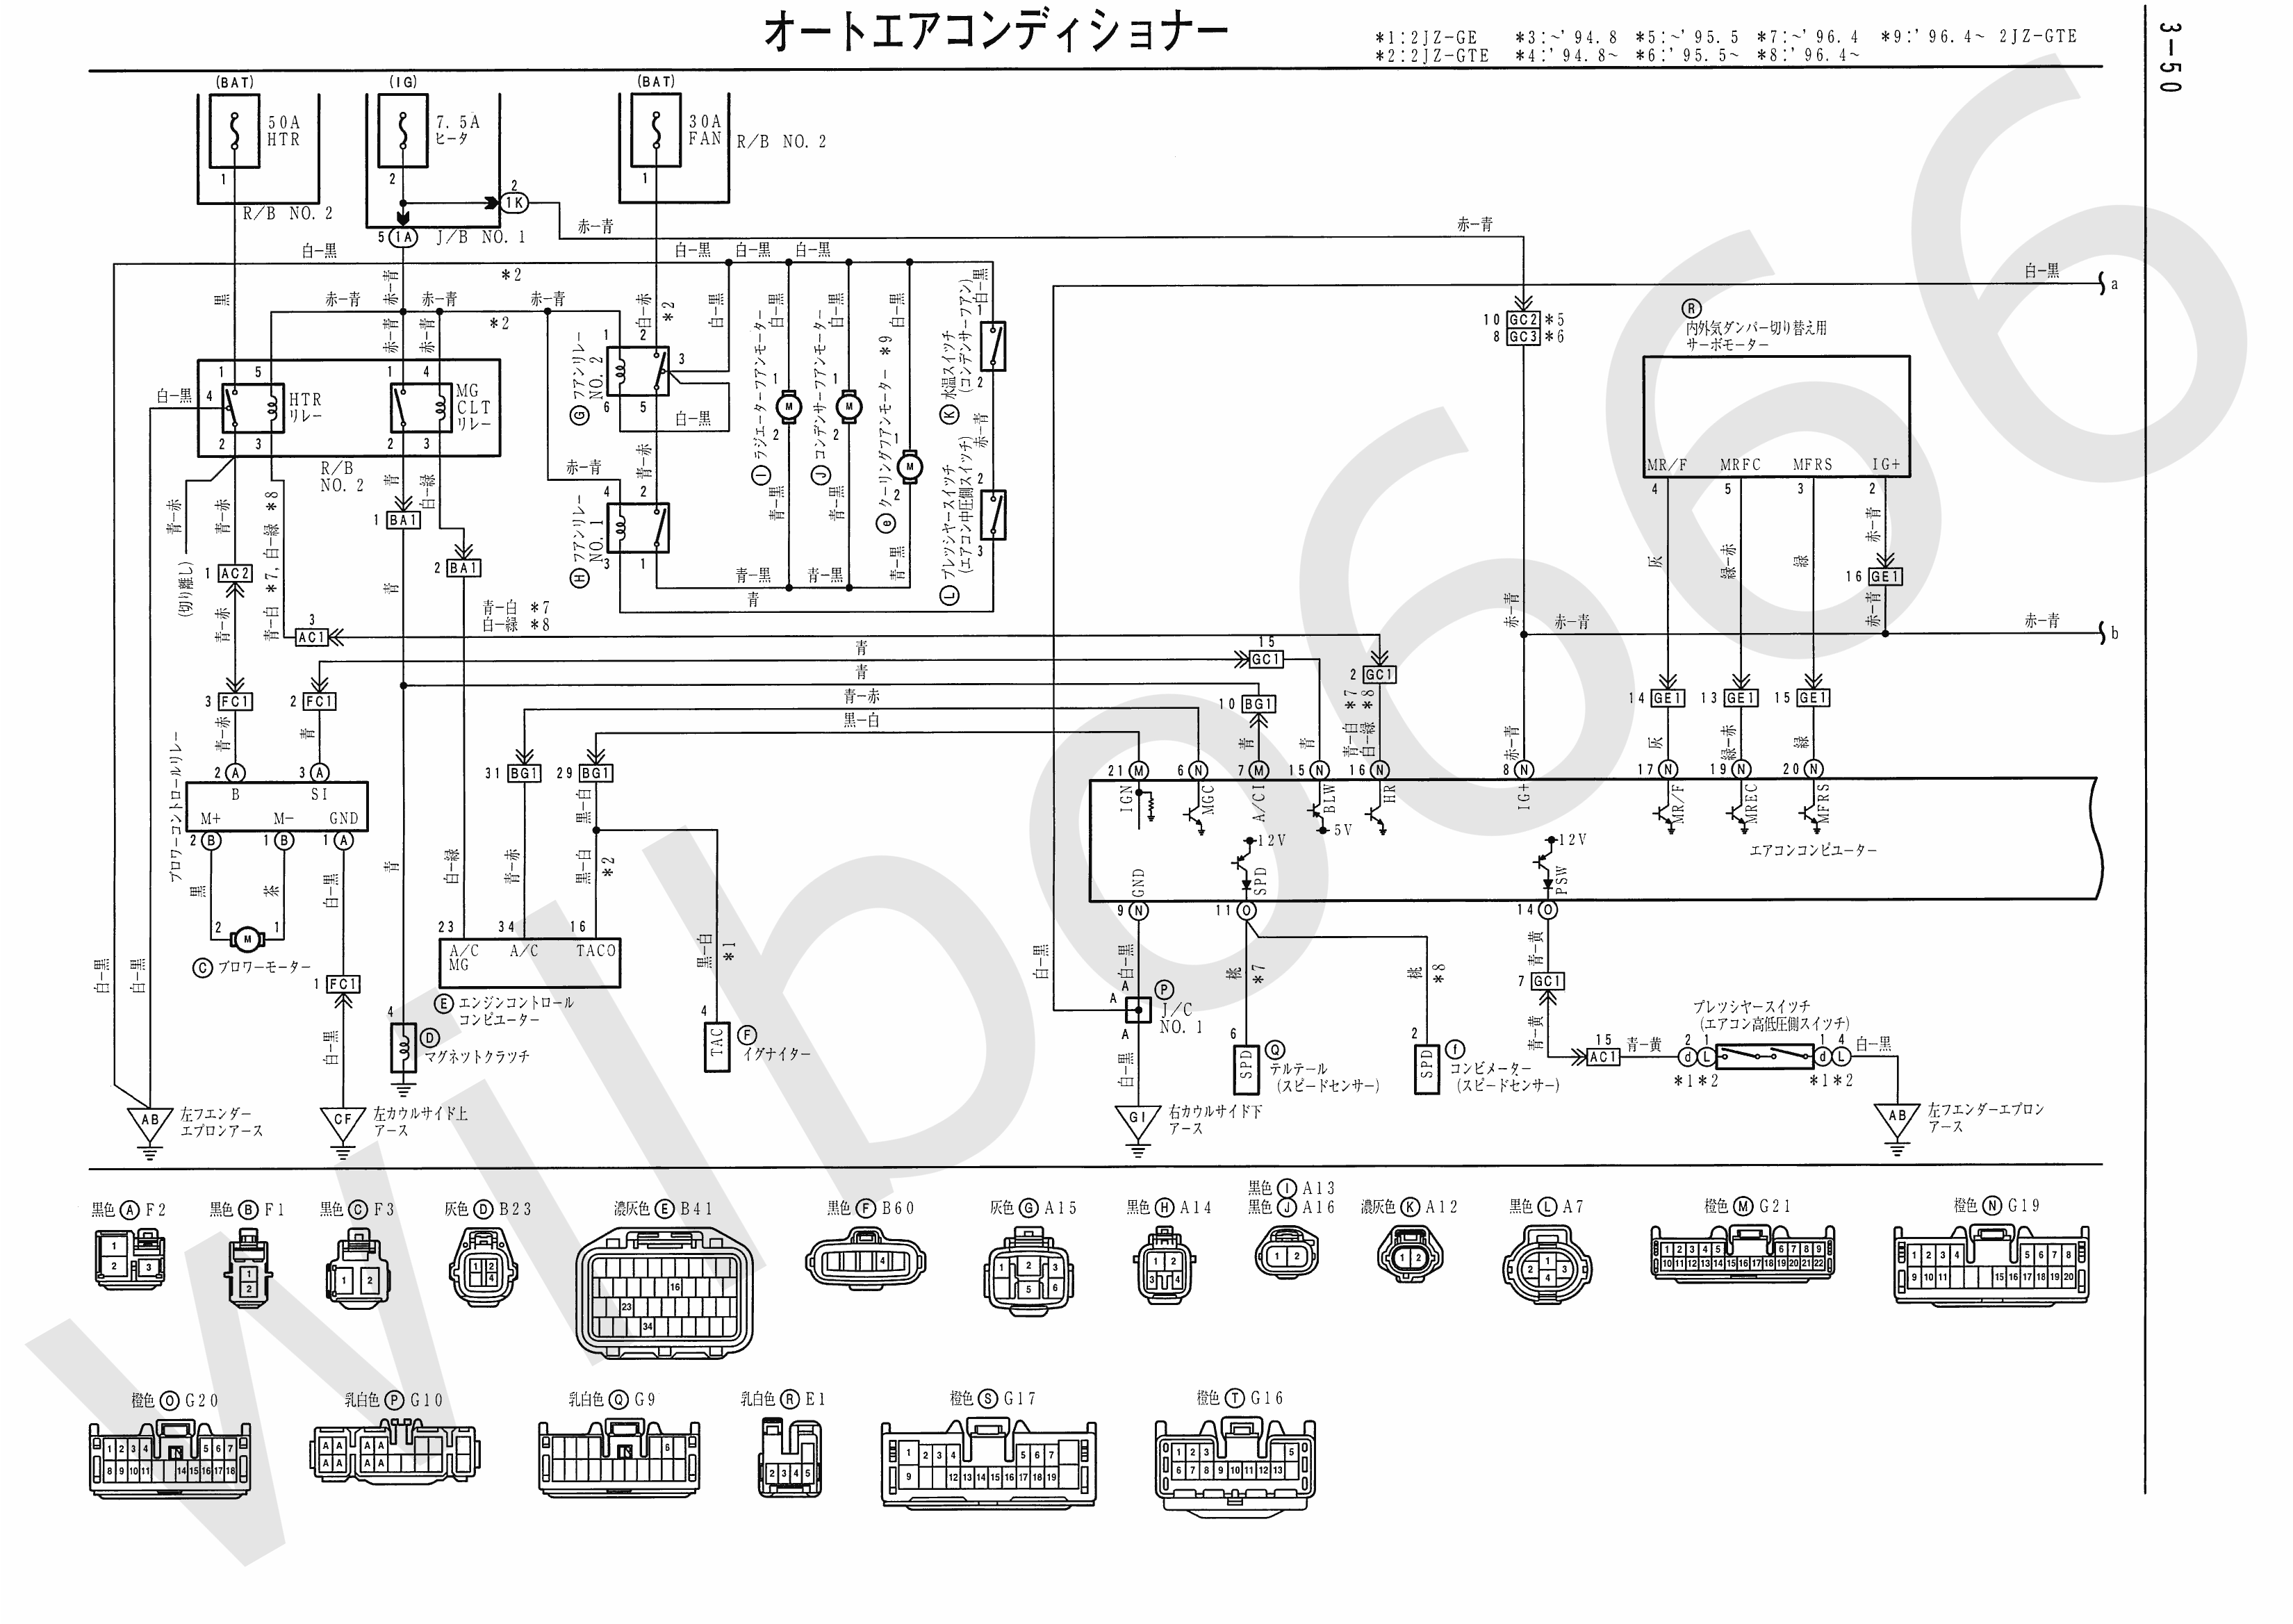 JZA80 Electrical Wiring Diagram 6742505 3 50 wilbo666 2jz ge jza80 supra engine wiring Lexus SC300 Engine at fashall.co